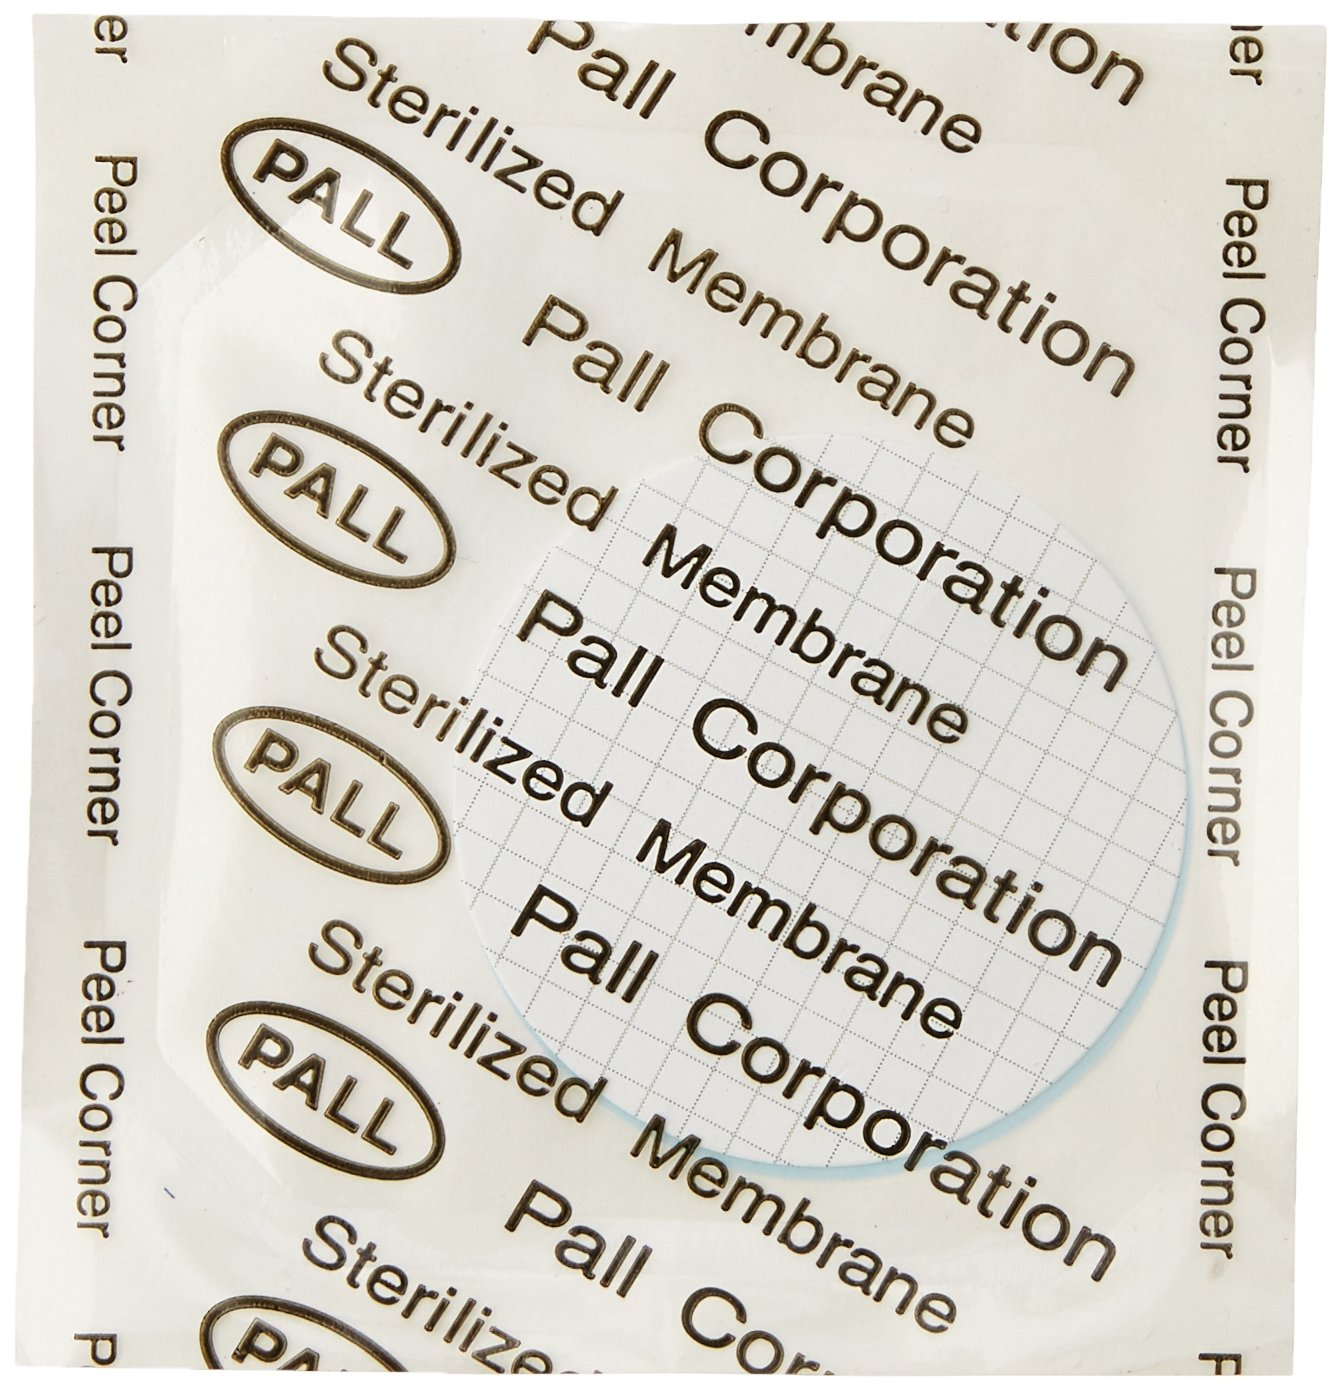 Pall 66068 Metricel GN-6 Membrane Filter, Grid Pattern, 0.45 um Pore Size, 47 mm Diameter (Pack of 1000)